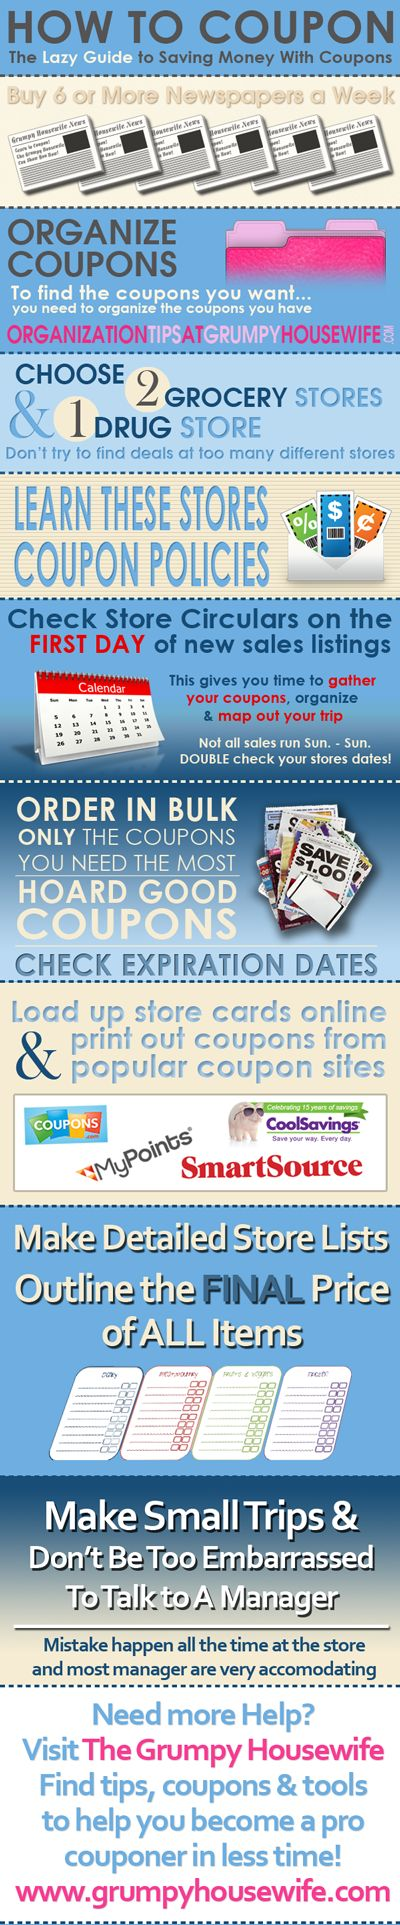 How to Coupon - The Lazy's Man's (or Woman's) Guide to Couponing! Really Cute, and Informative!